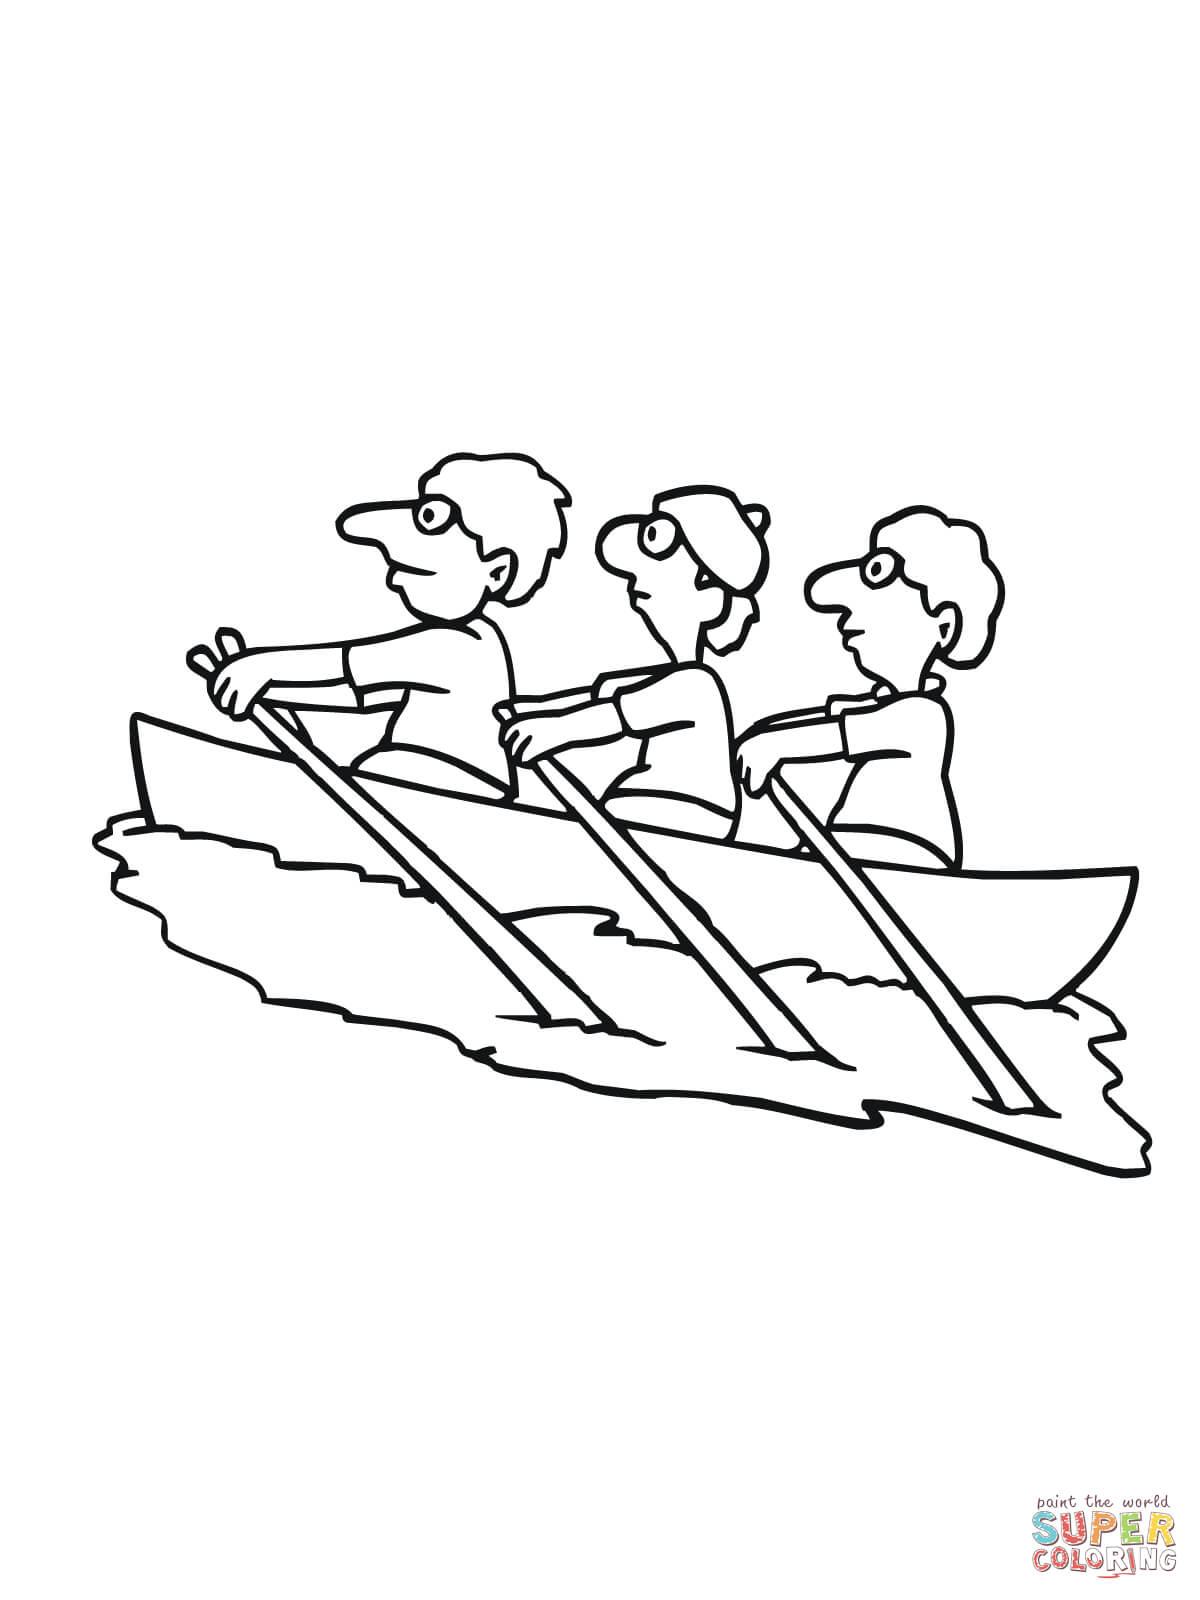 14 Kids Coloring Pages Rowing